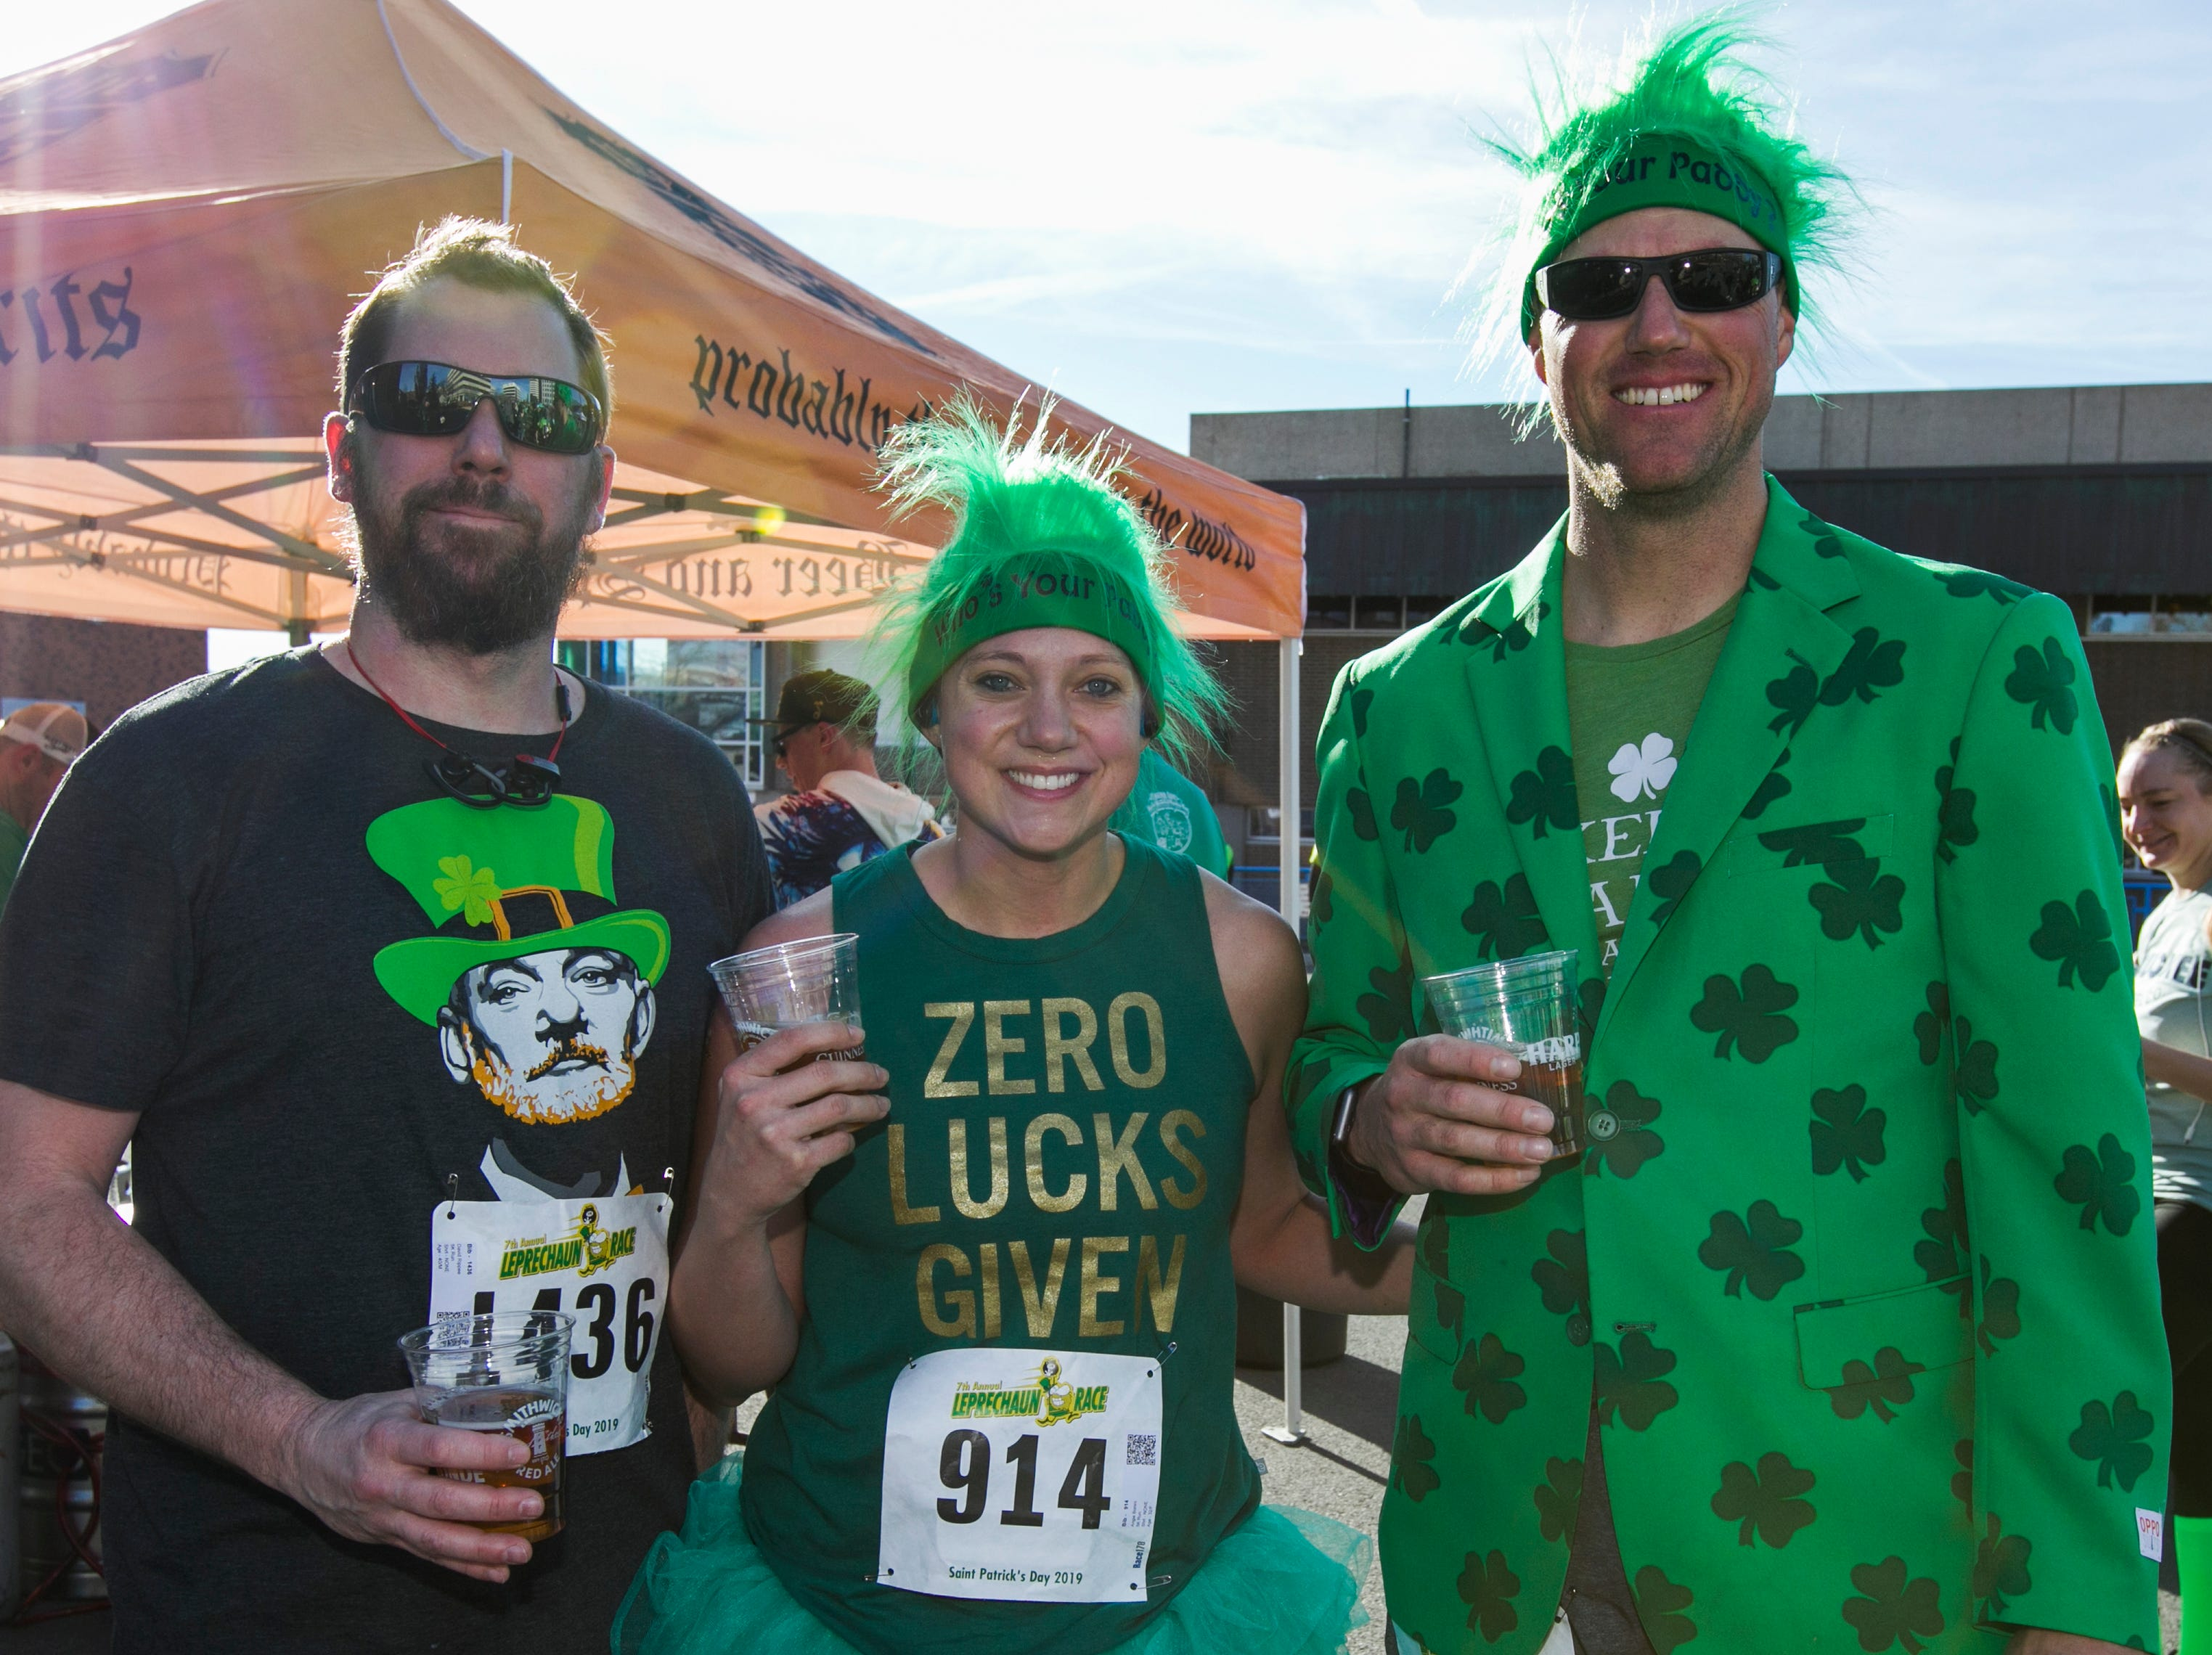 David, Angie and Scott after the 7th annual Leprechaun Race in downtown Reno, Nevada on Sunday, March 17, 2019.